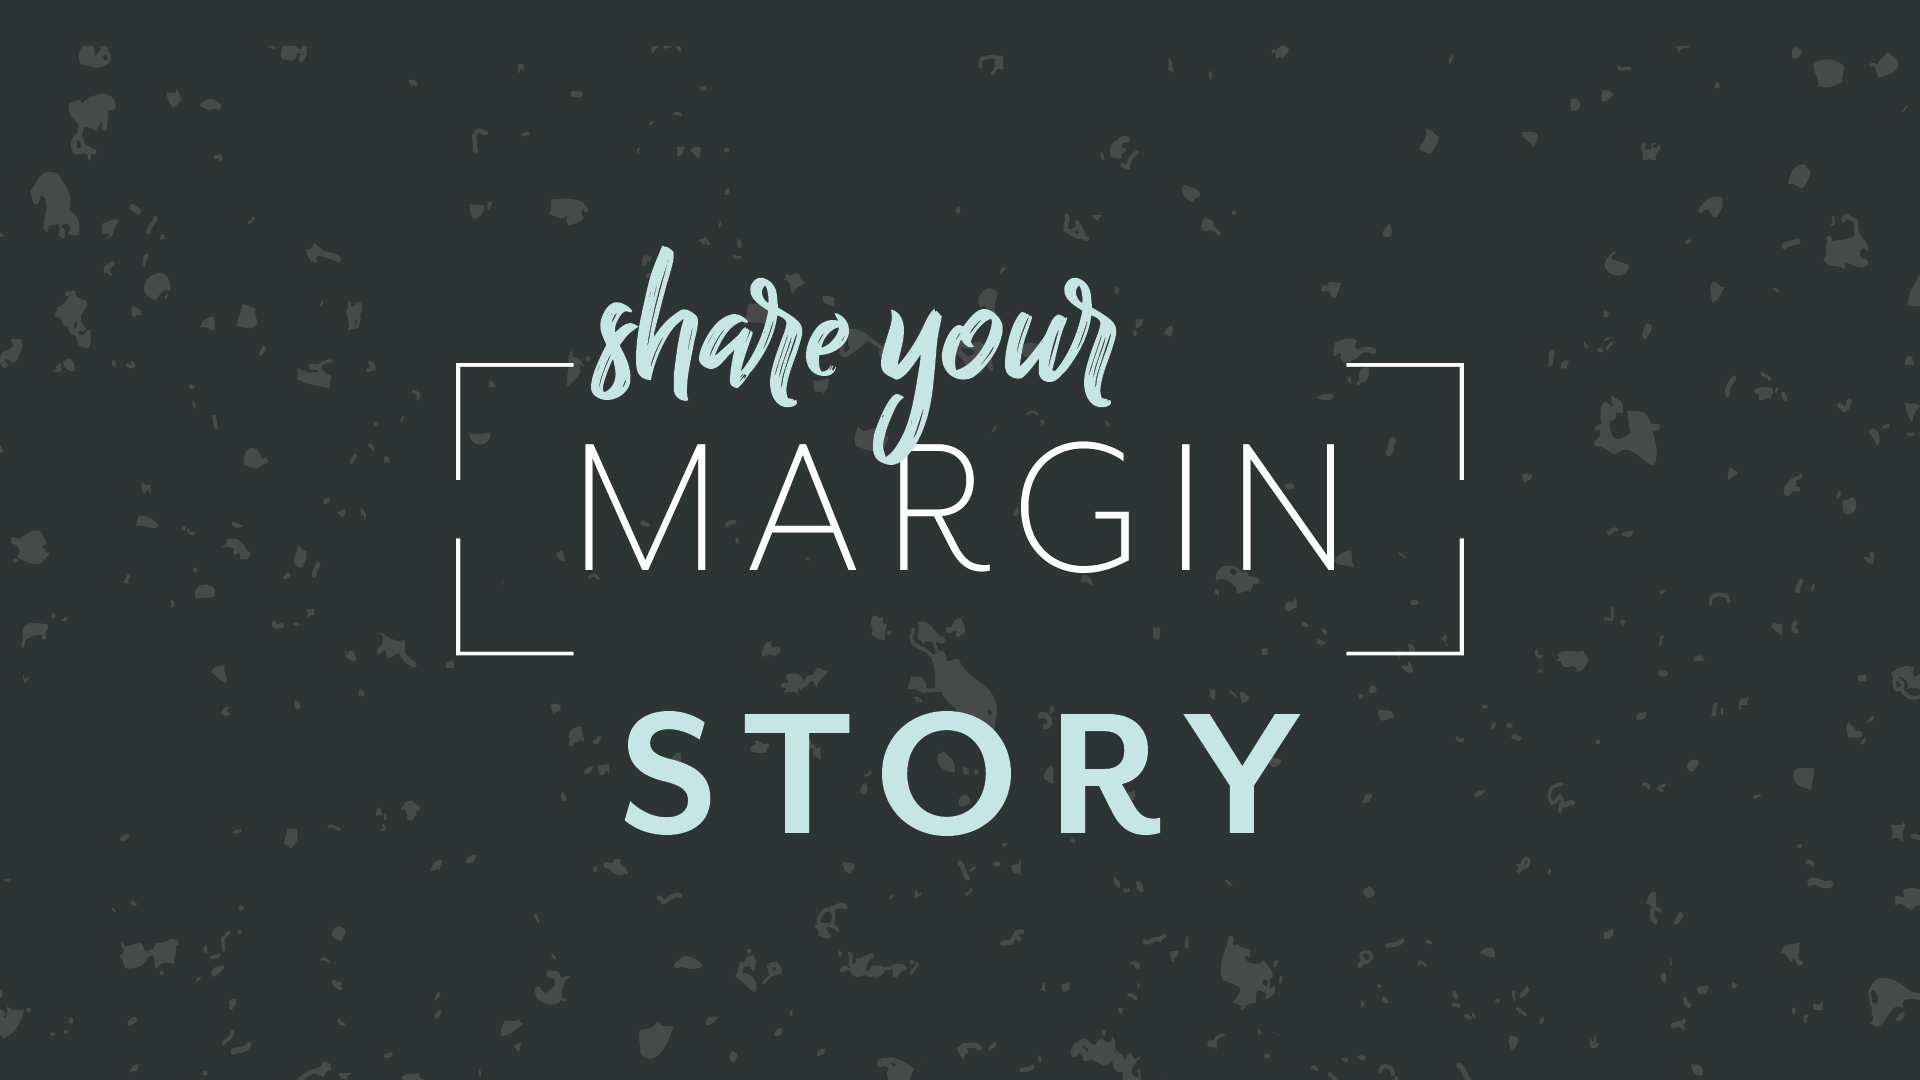 Share-Margin-Story-CCB.png